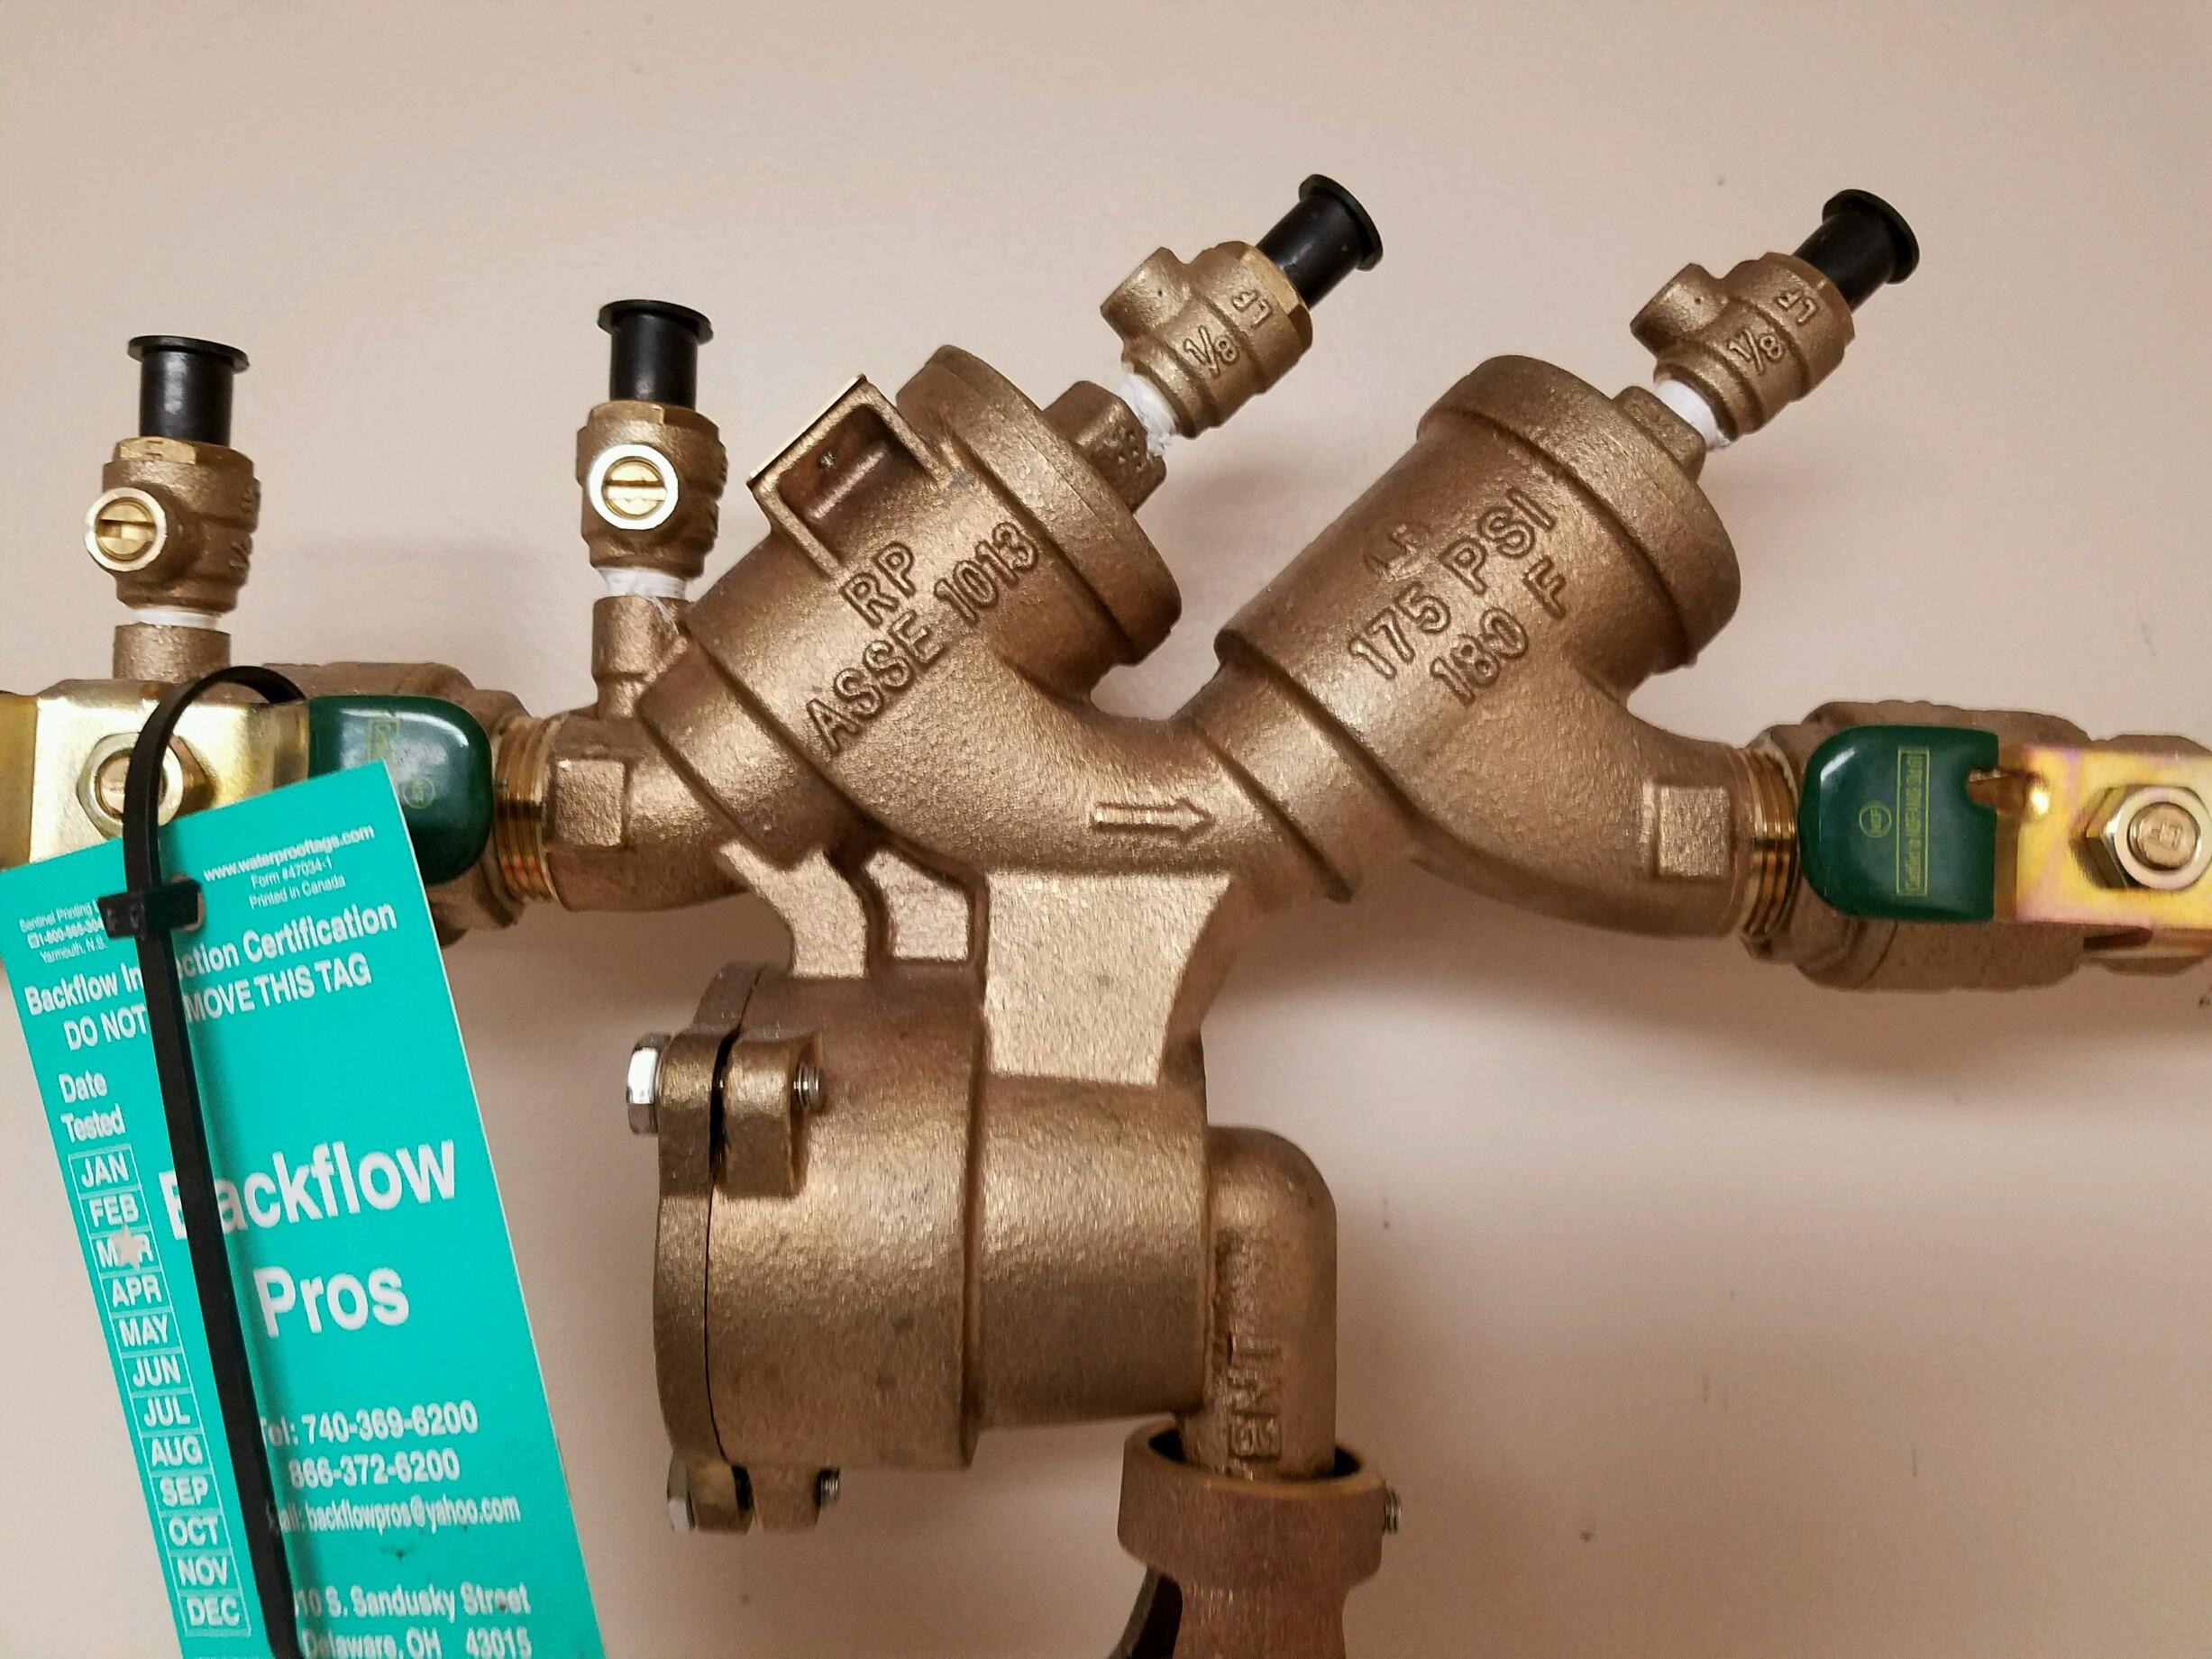 Backflow Pros image 1